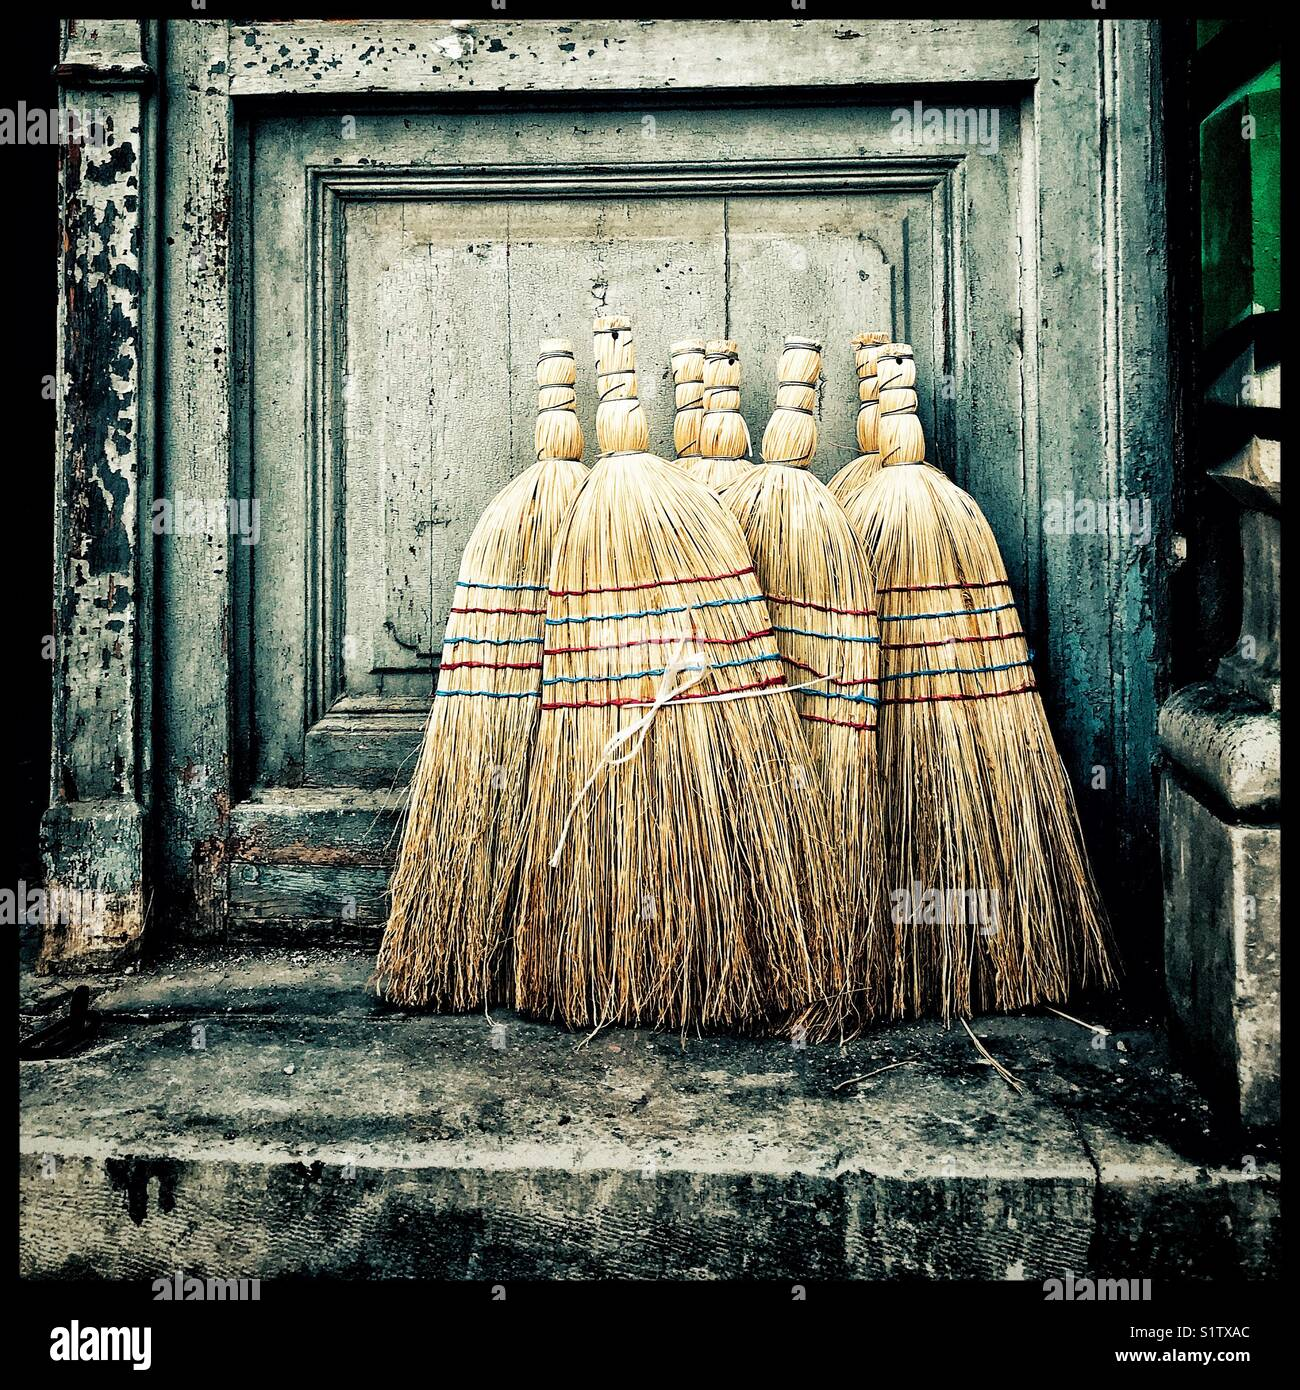 Straw Brooms Stock Photos Amp Straw Brooms Stock Images Alamy